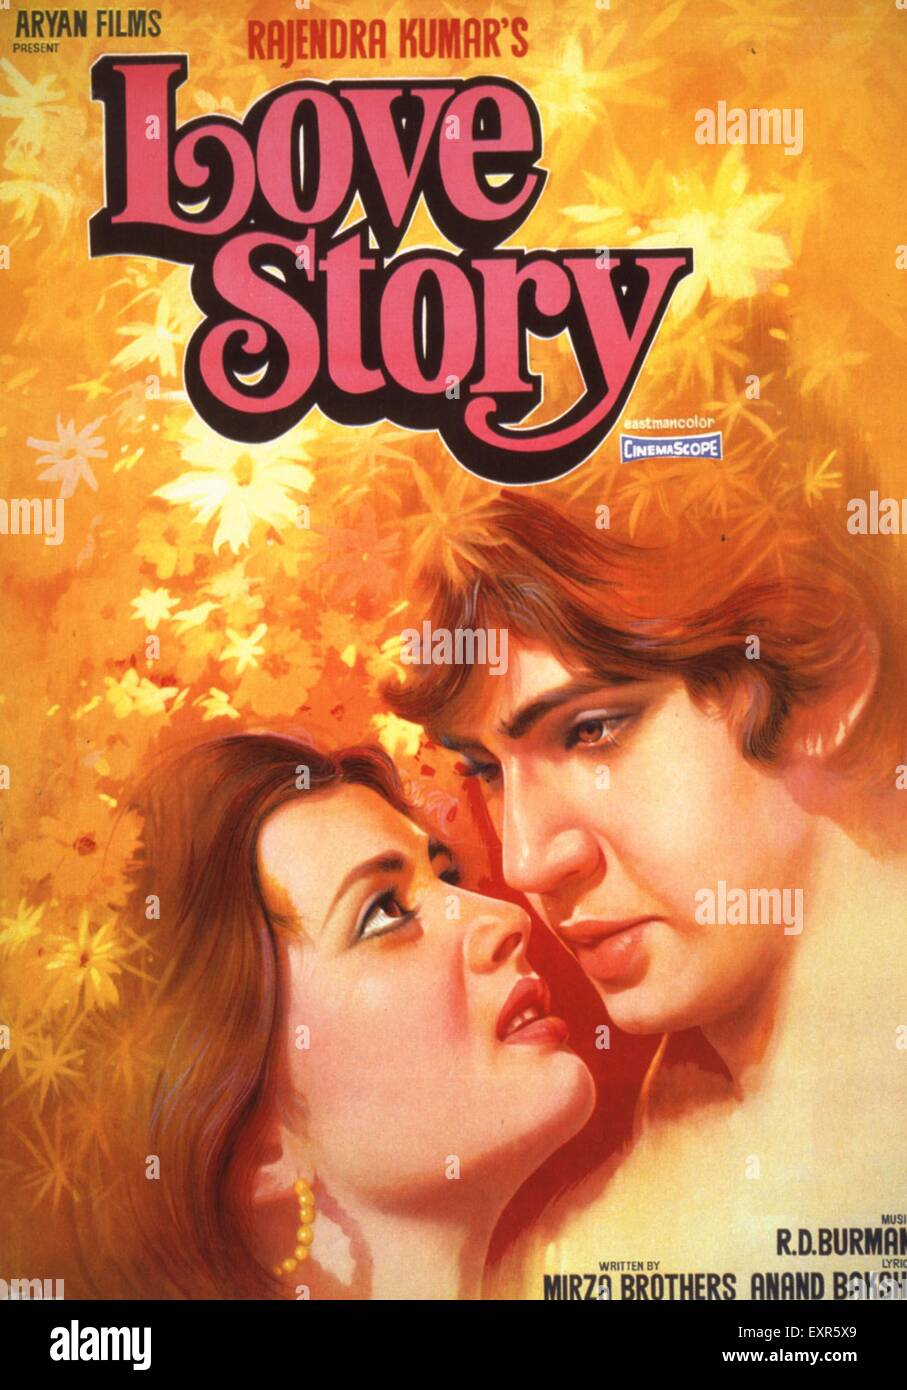 1980s India Love Story Film Poster - Stock Image